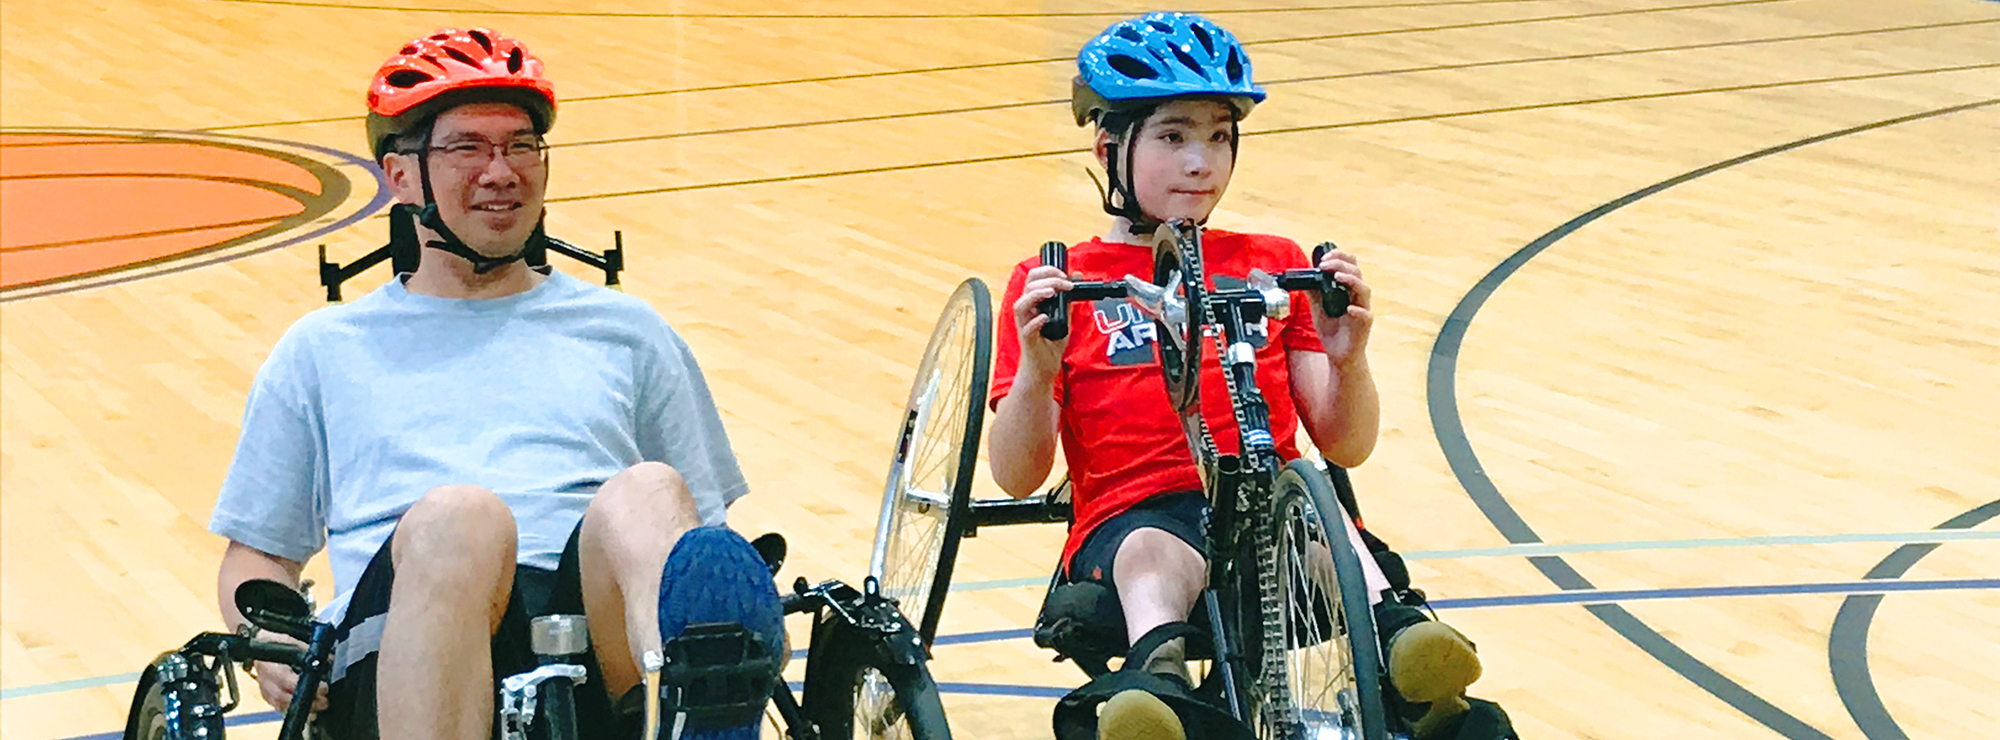 Photo shows two individuals on recumbent bikes.